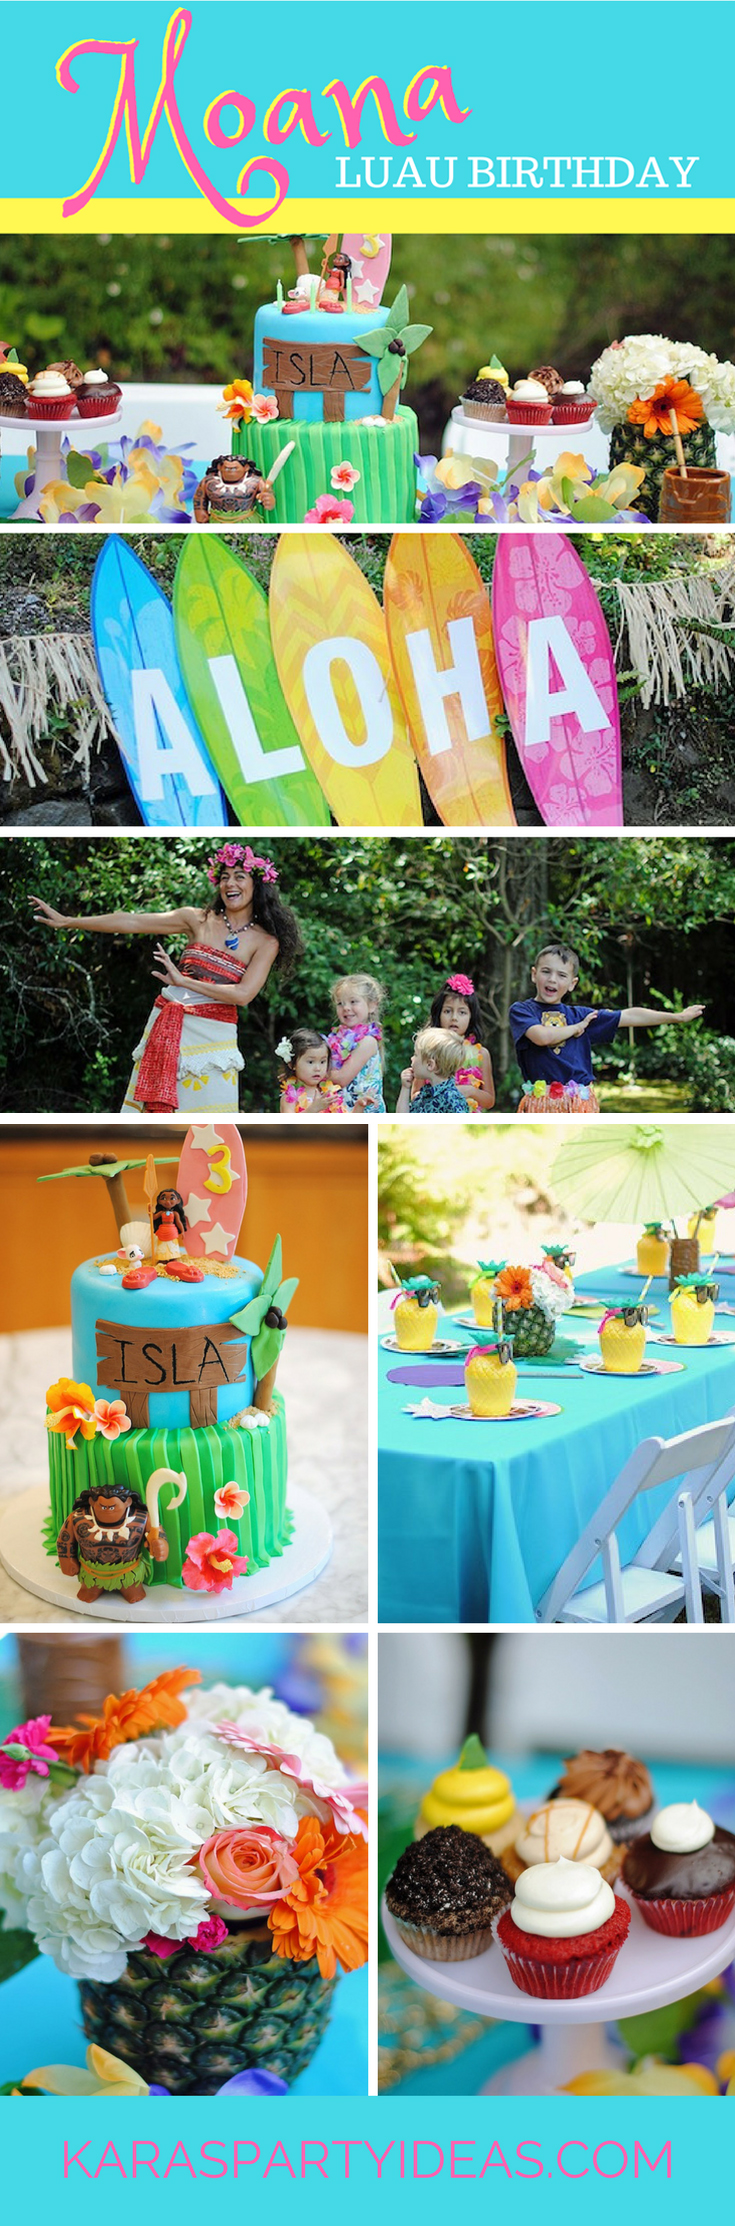 Moana Luau Birthday Party via Kara's Party Ideas